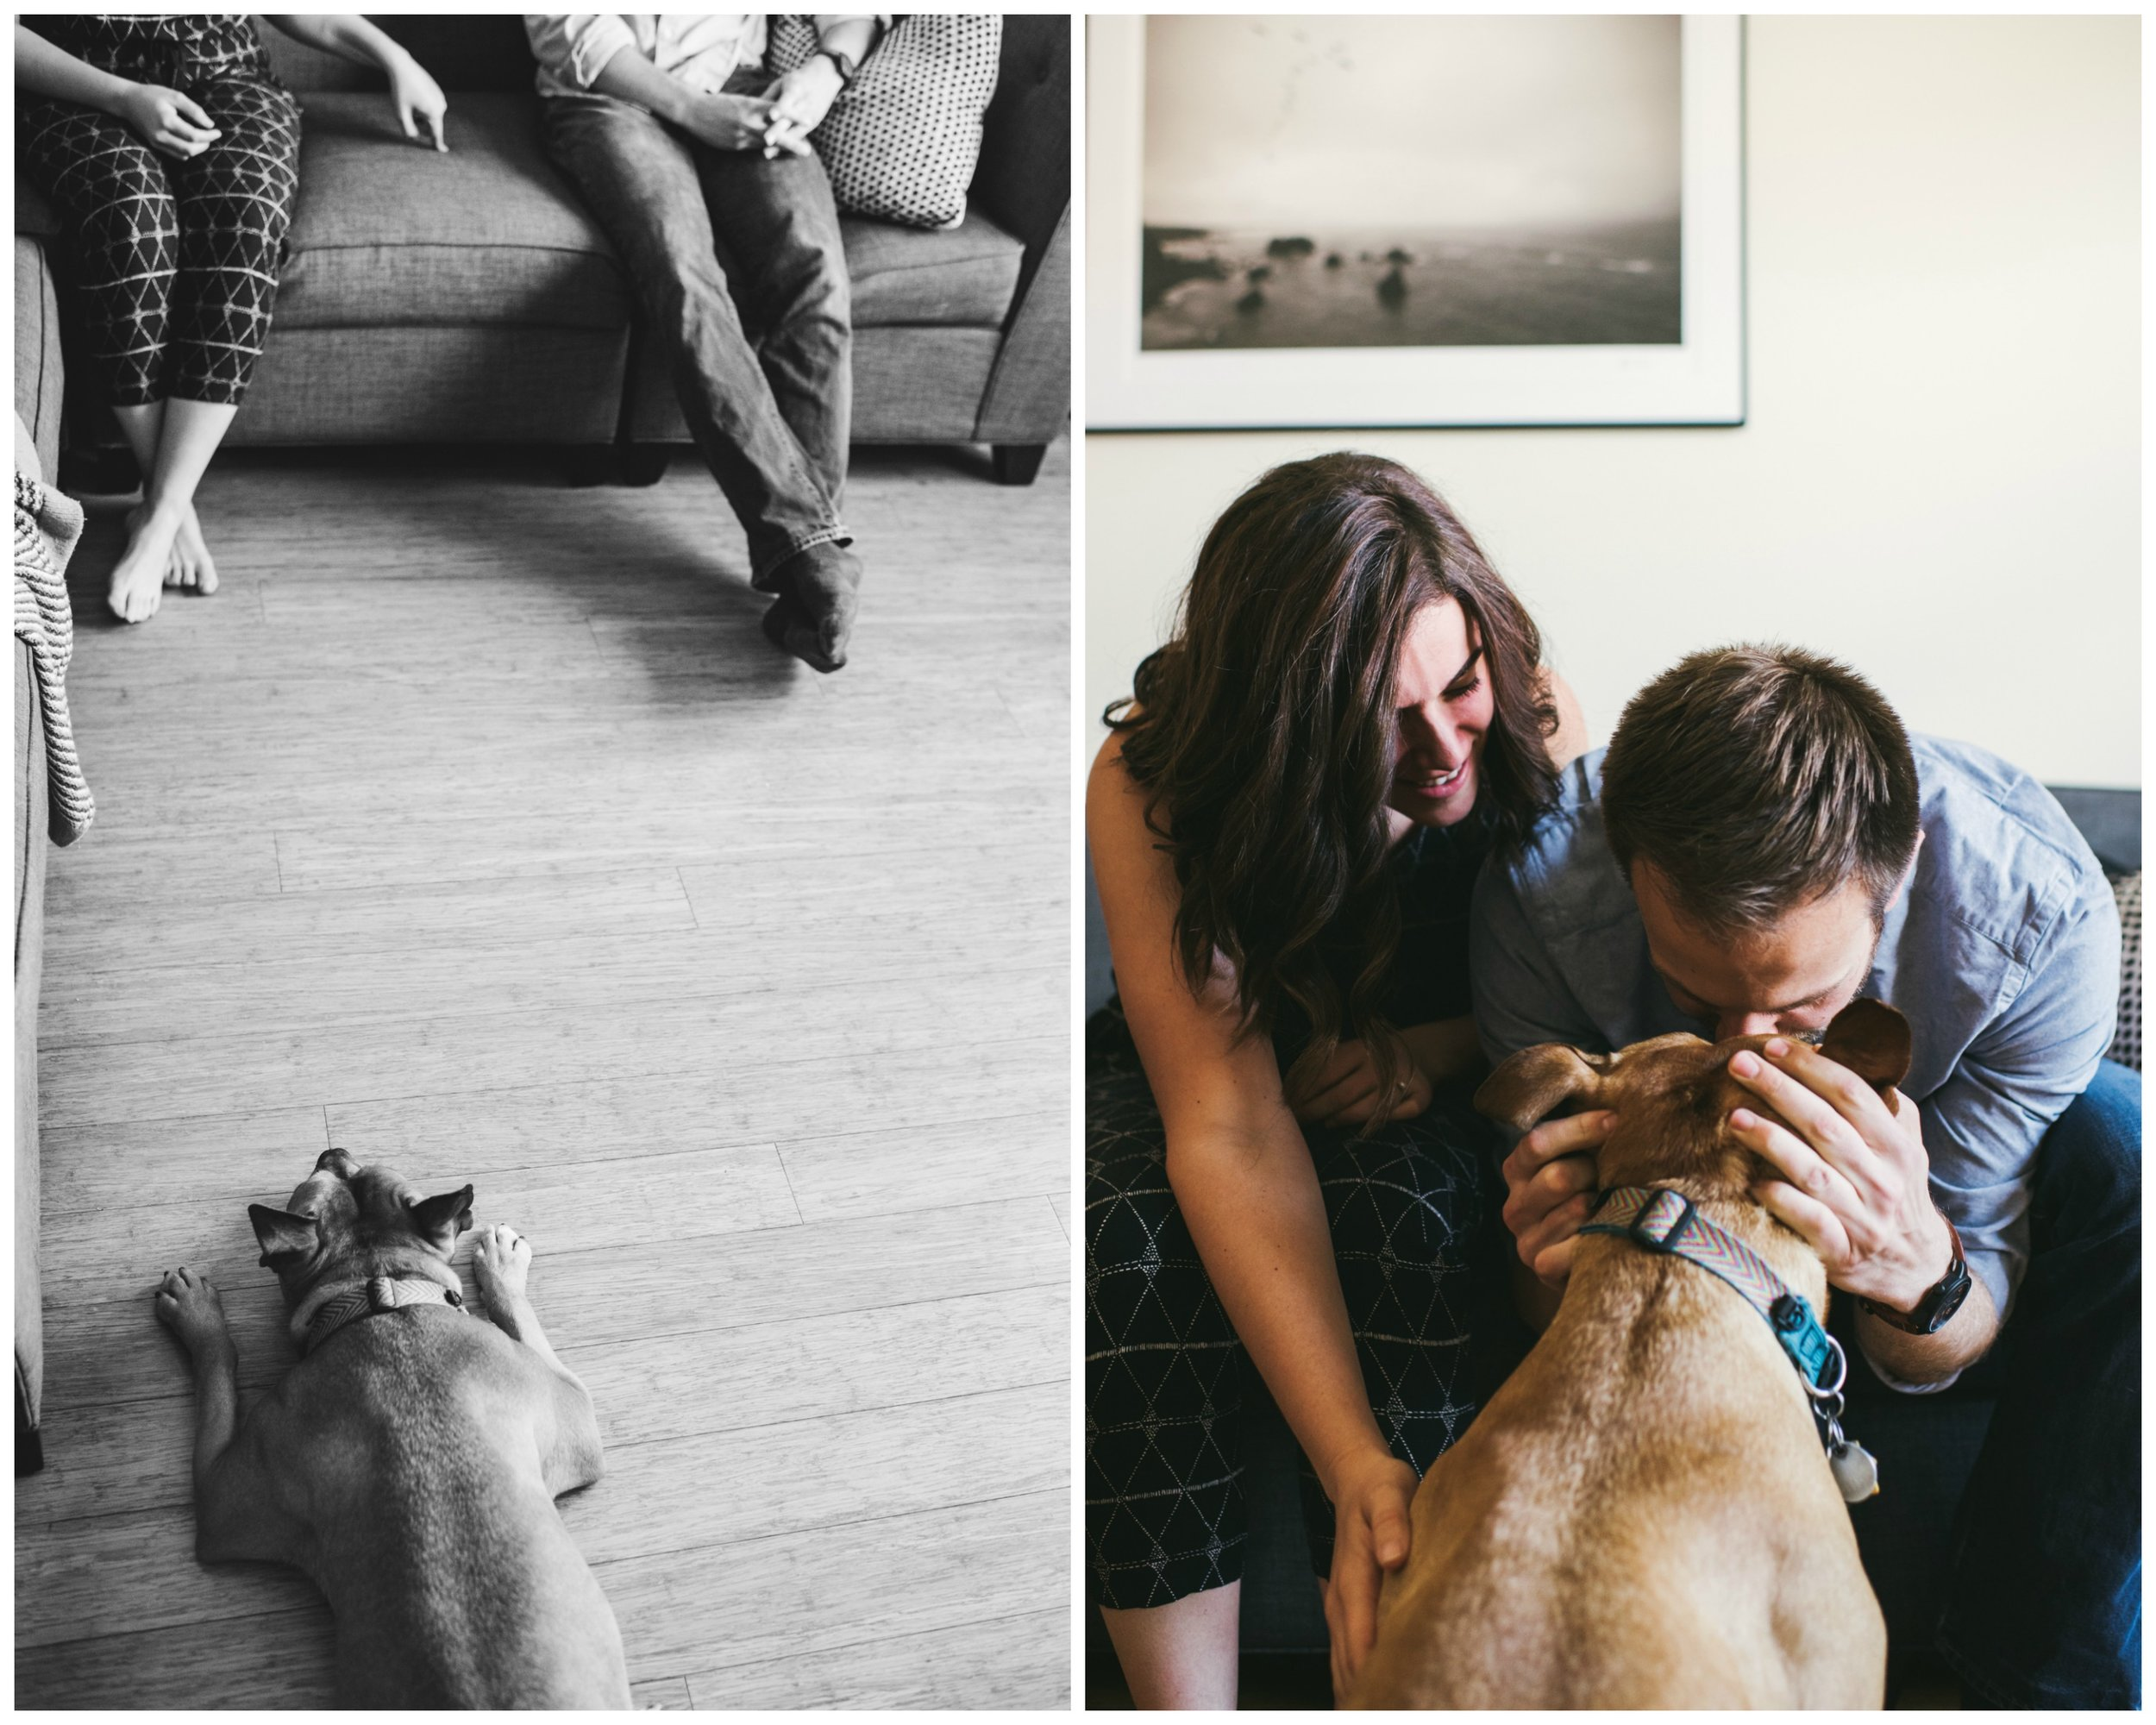 IN HOME BROOKLYN ENGAGEMENT SESSION - INTIMATE WEDDING PHOTOGRAPHER - TWOTWENTY by CHI-CHI AGBIM.jpg